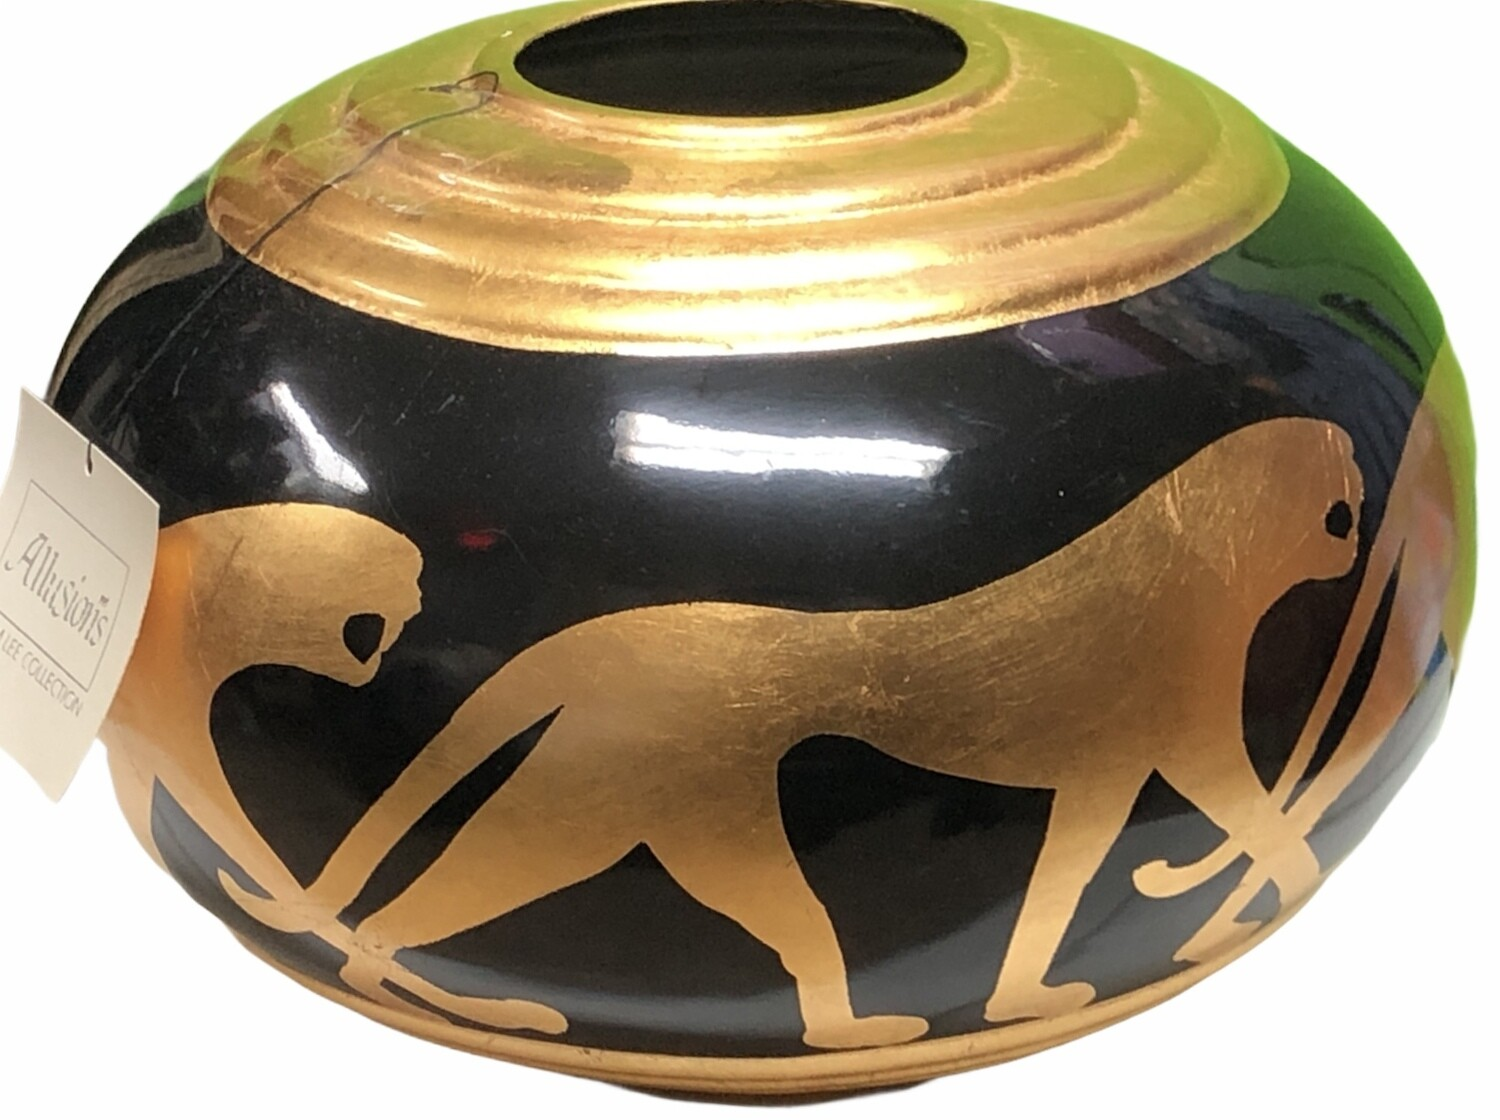 New Vintage ALLUSIONS Lam Lee Collection Black & Gold Panther Planter $250 circa 1996